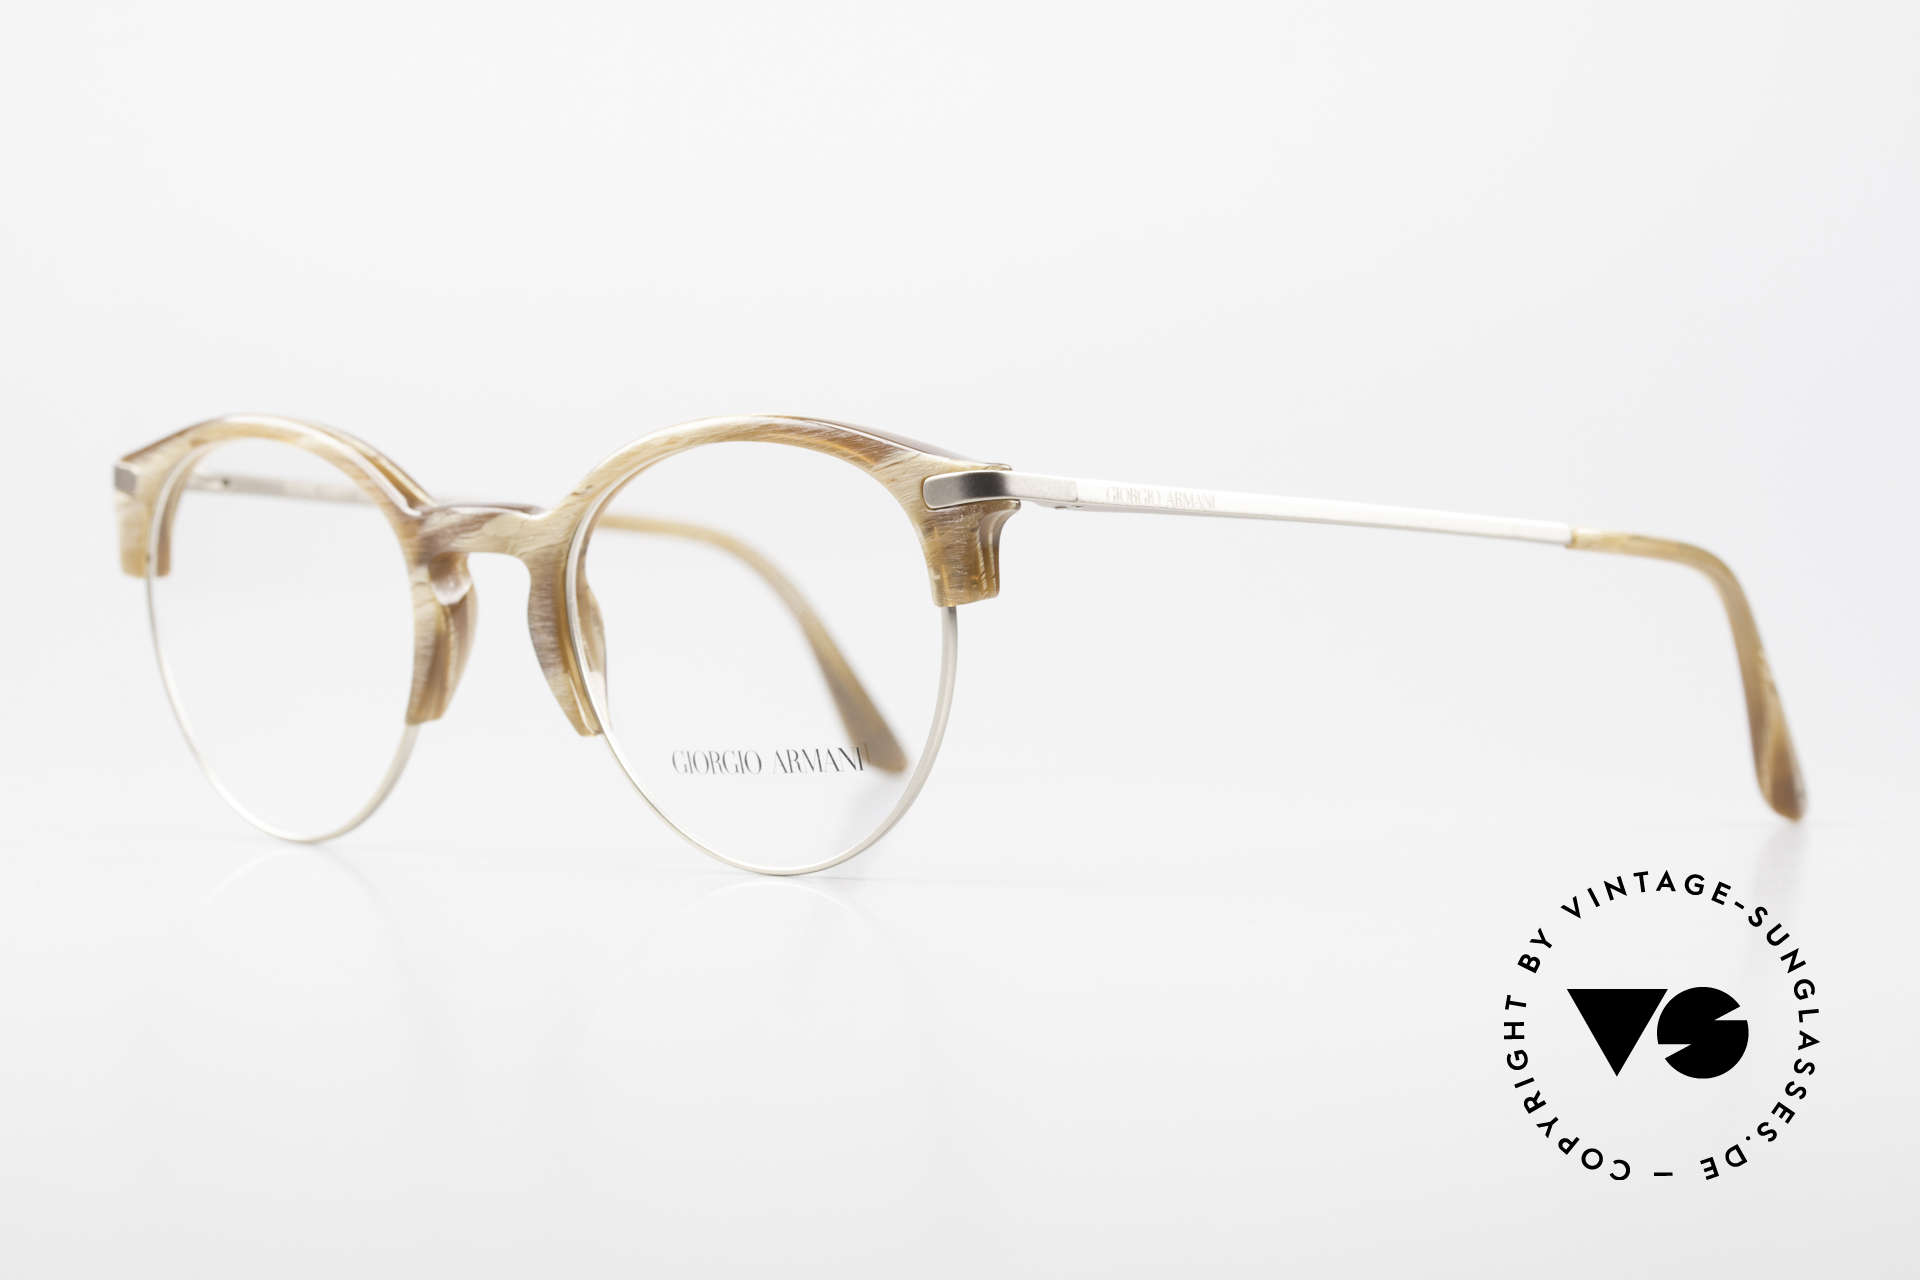 Giorgio Armani 7014 Panto Frame With Spring Hinges, tangible premium-quality with flexible spring hinges, Made for Men and Women